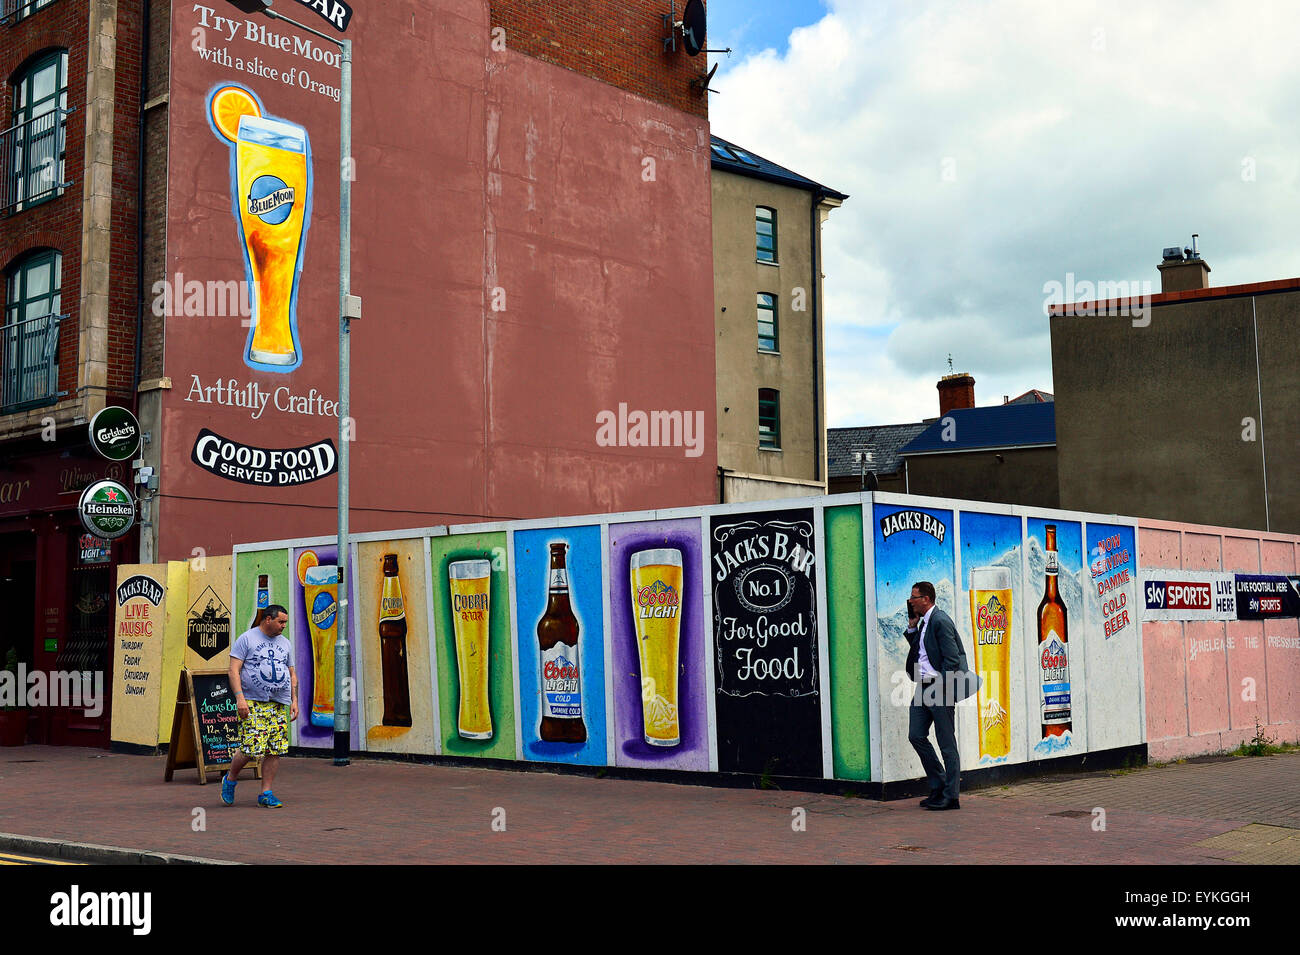 People walking past billboards advertising alcohol outside a pub in Londonderry (Derry), Northern Ireland - Stock Image